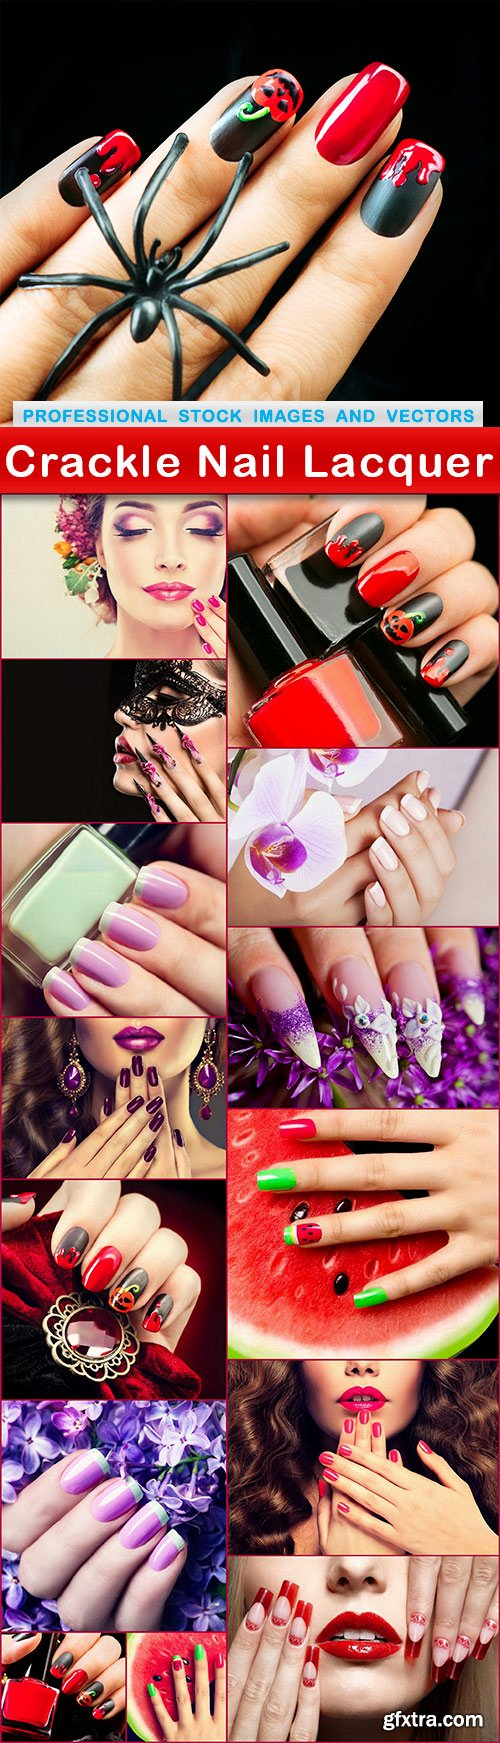 Crackle Nail Lacquer - 15 UHQ JPEG